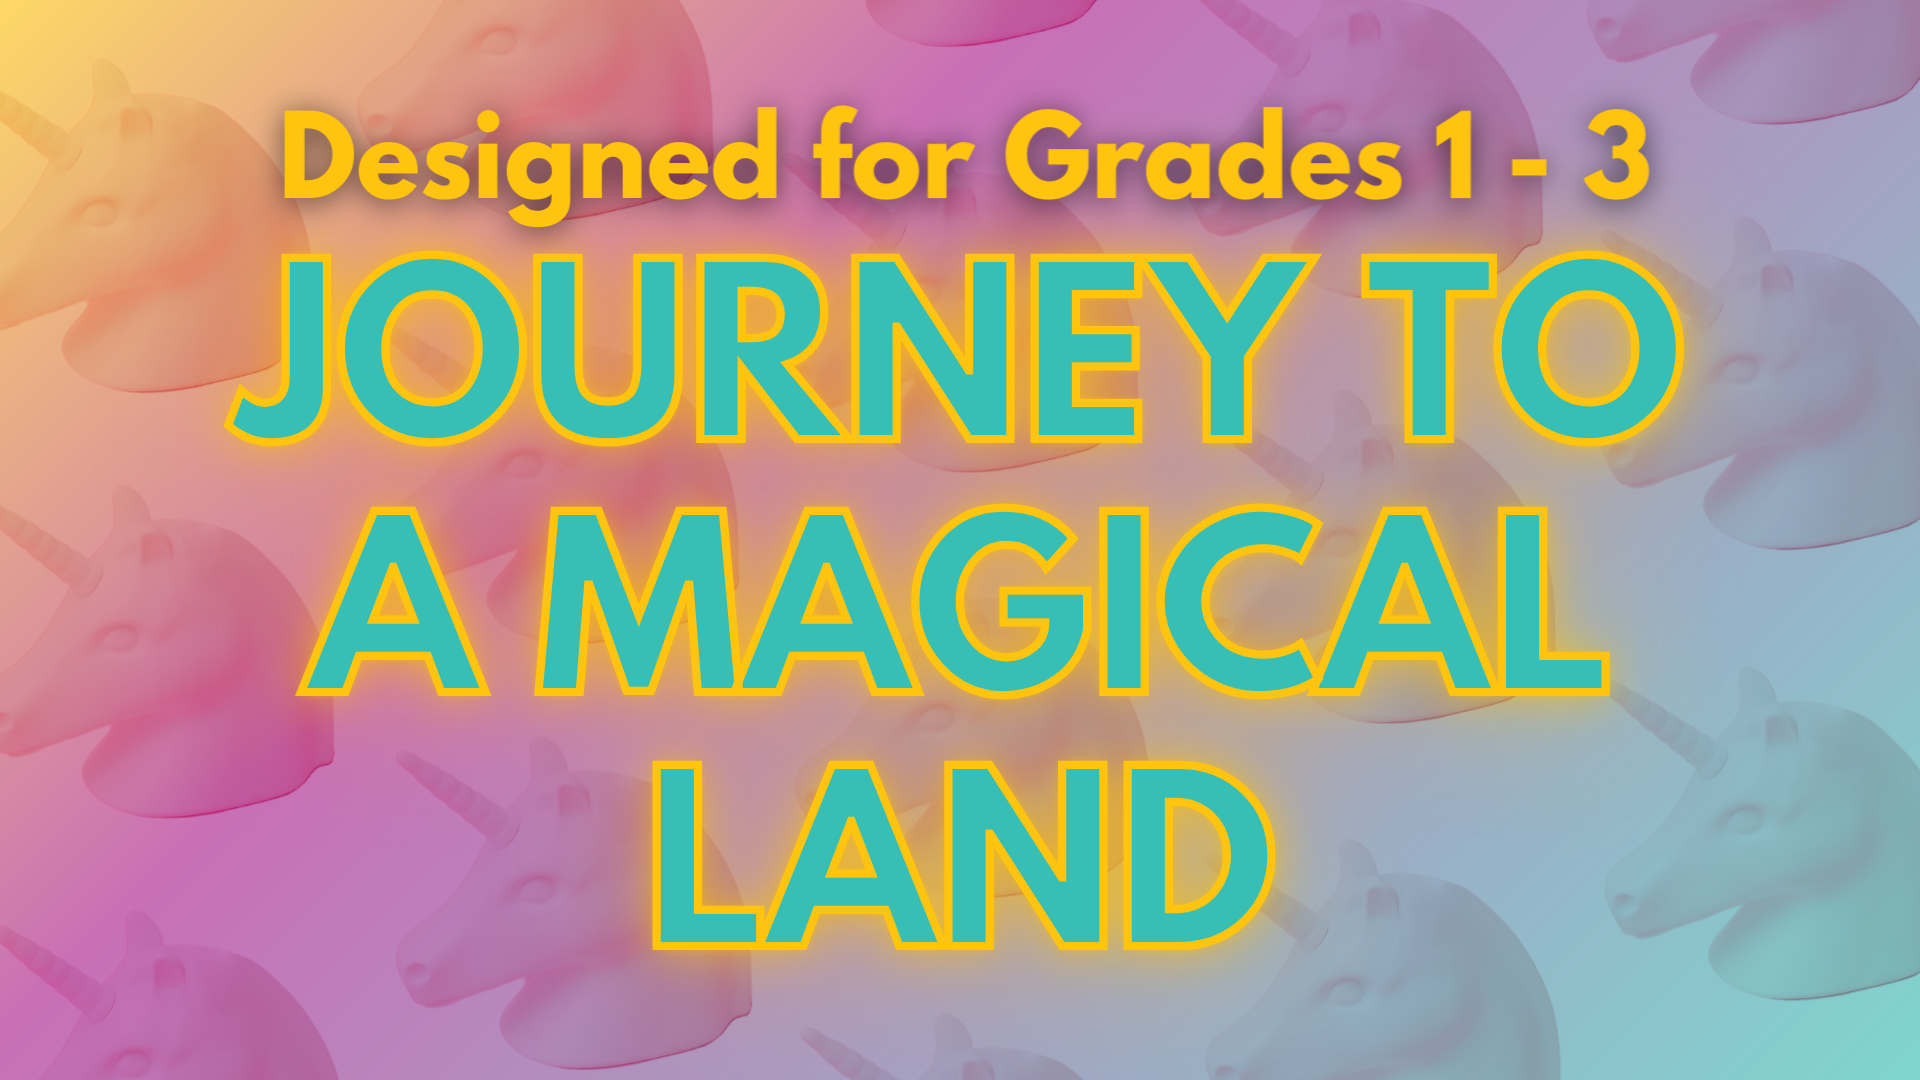 Journey to a Magical Land for Grades 1 - 3